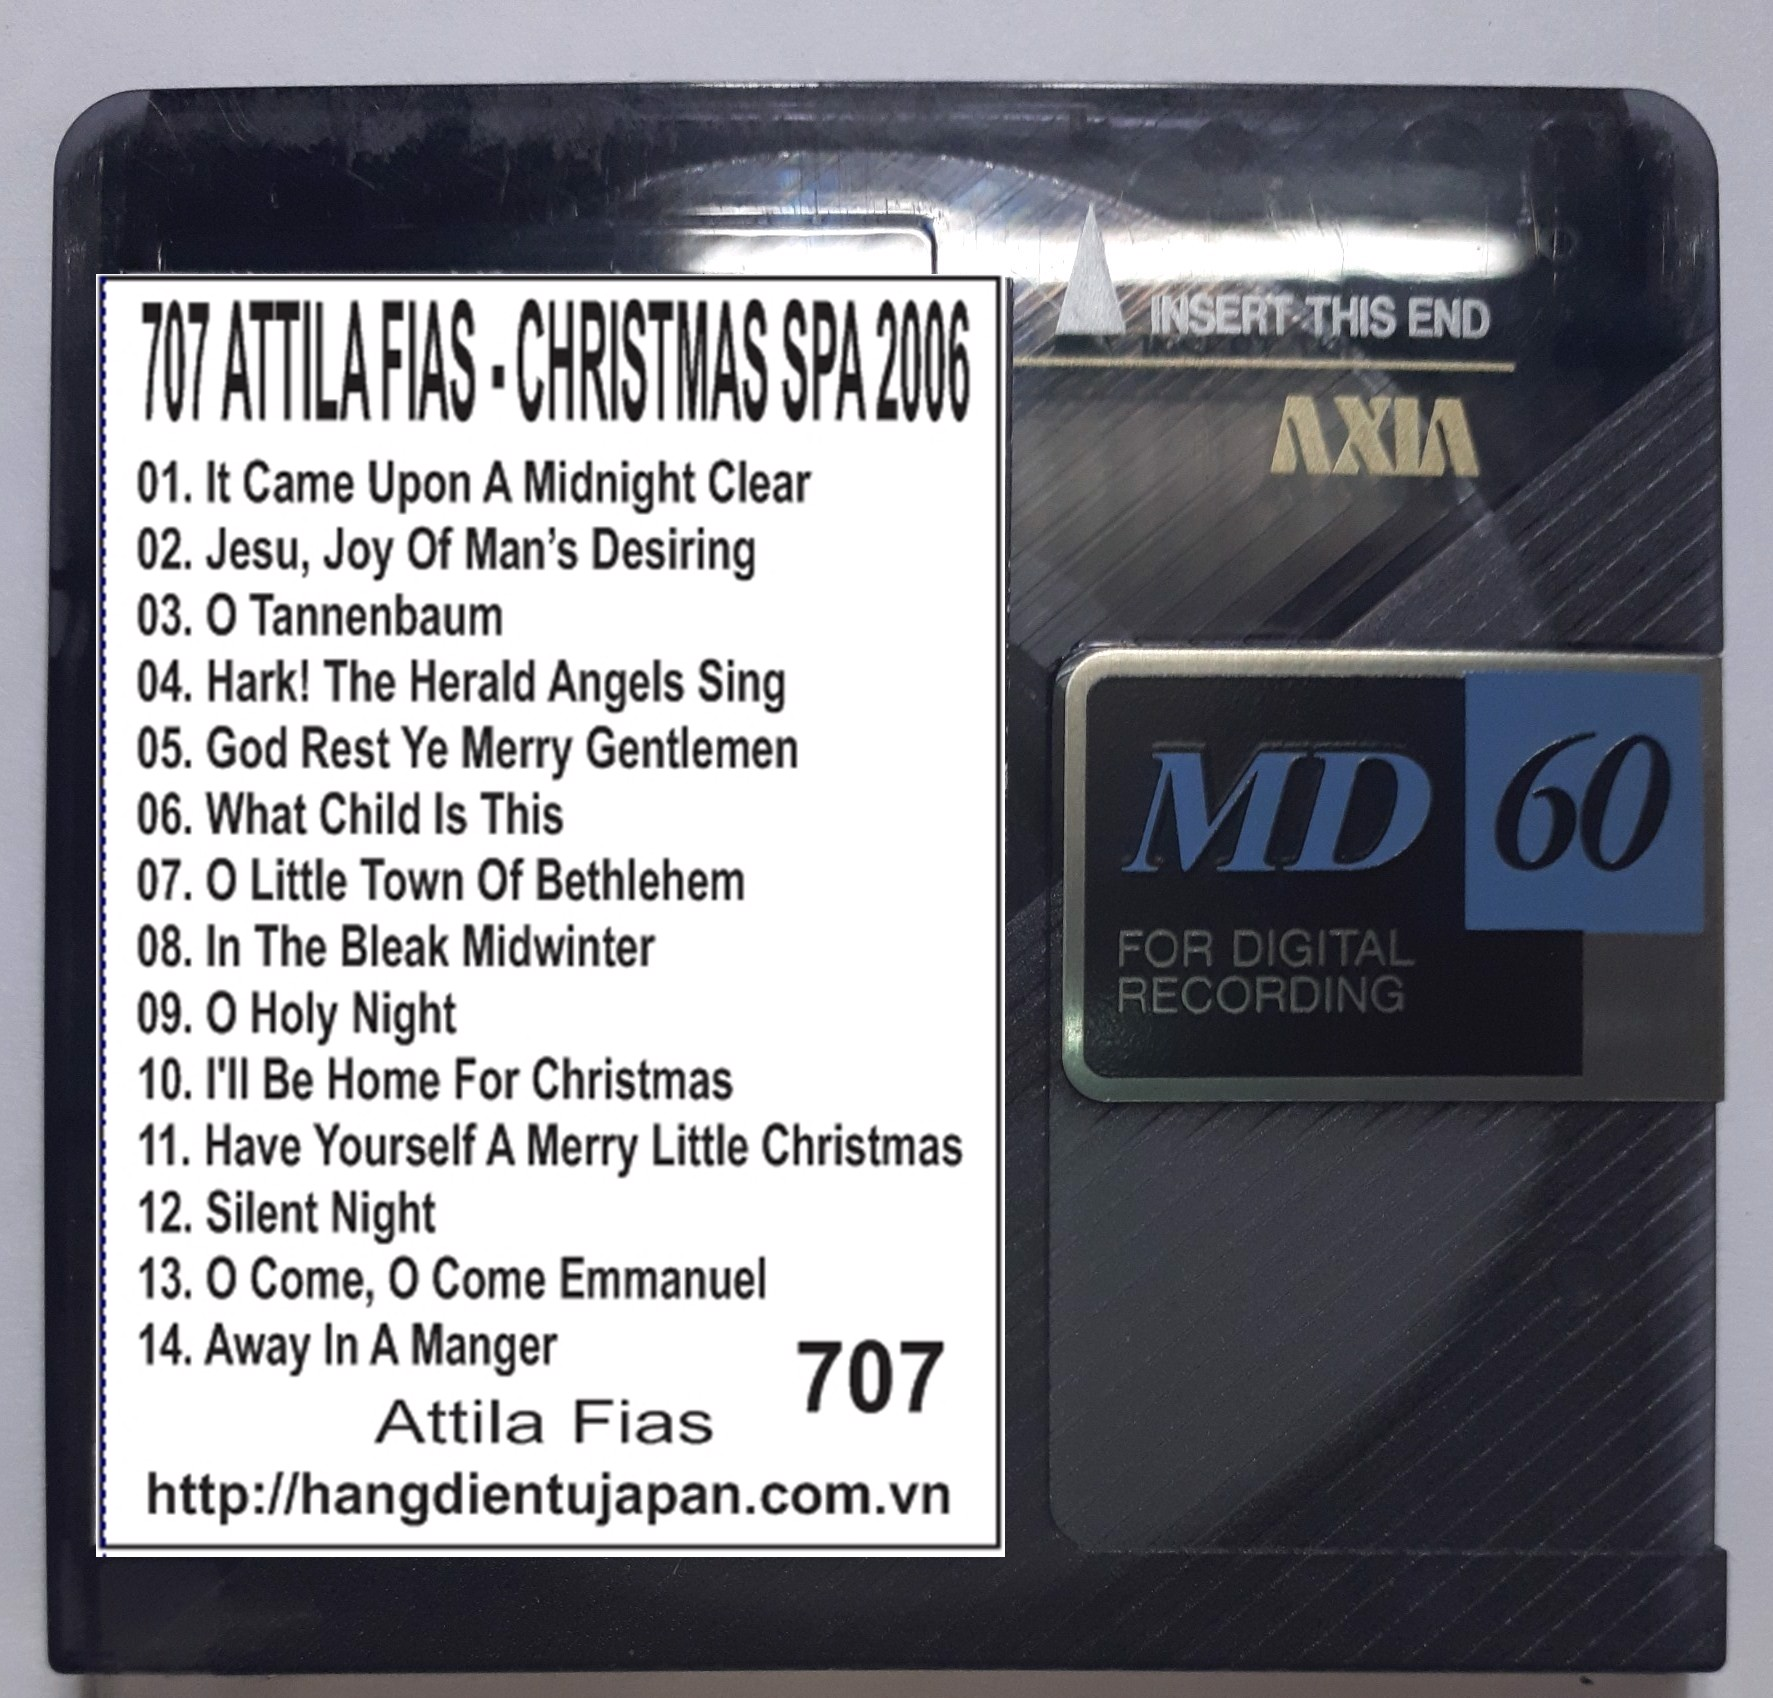 707 ATTILA FIAS - CHRISTMAS SPA (2006)